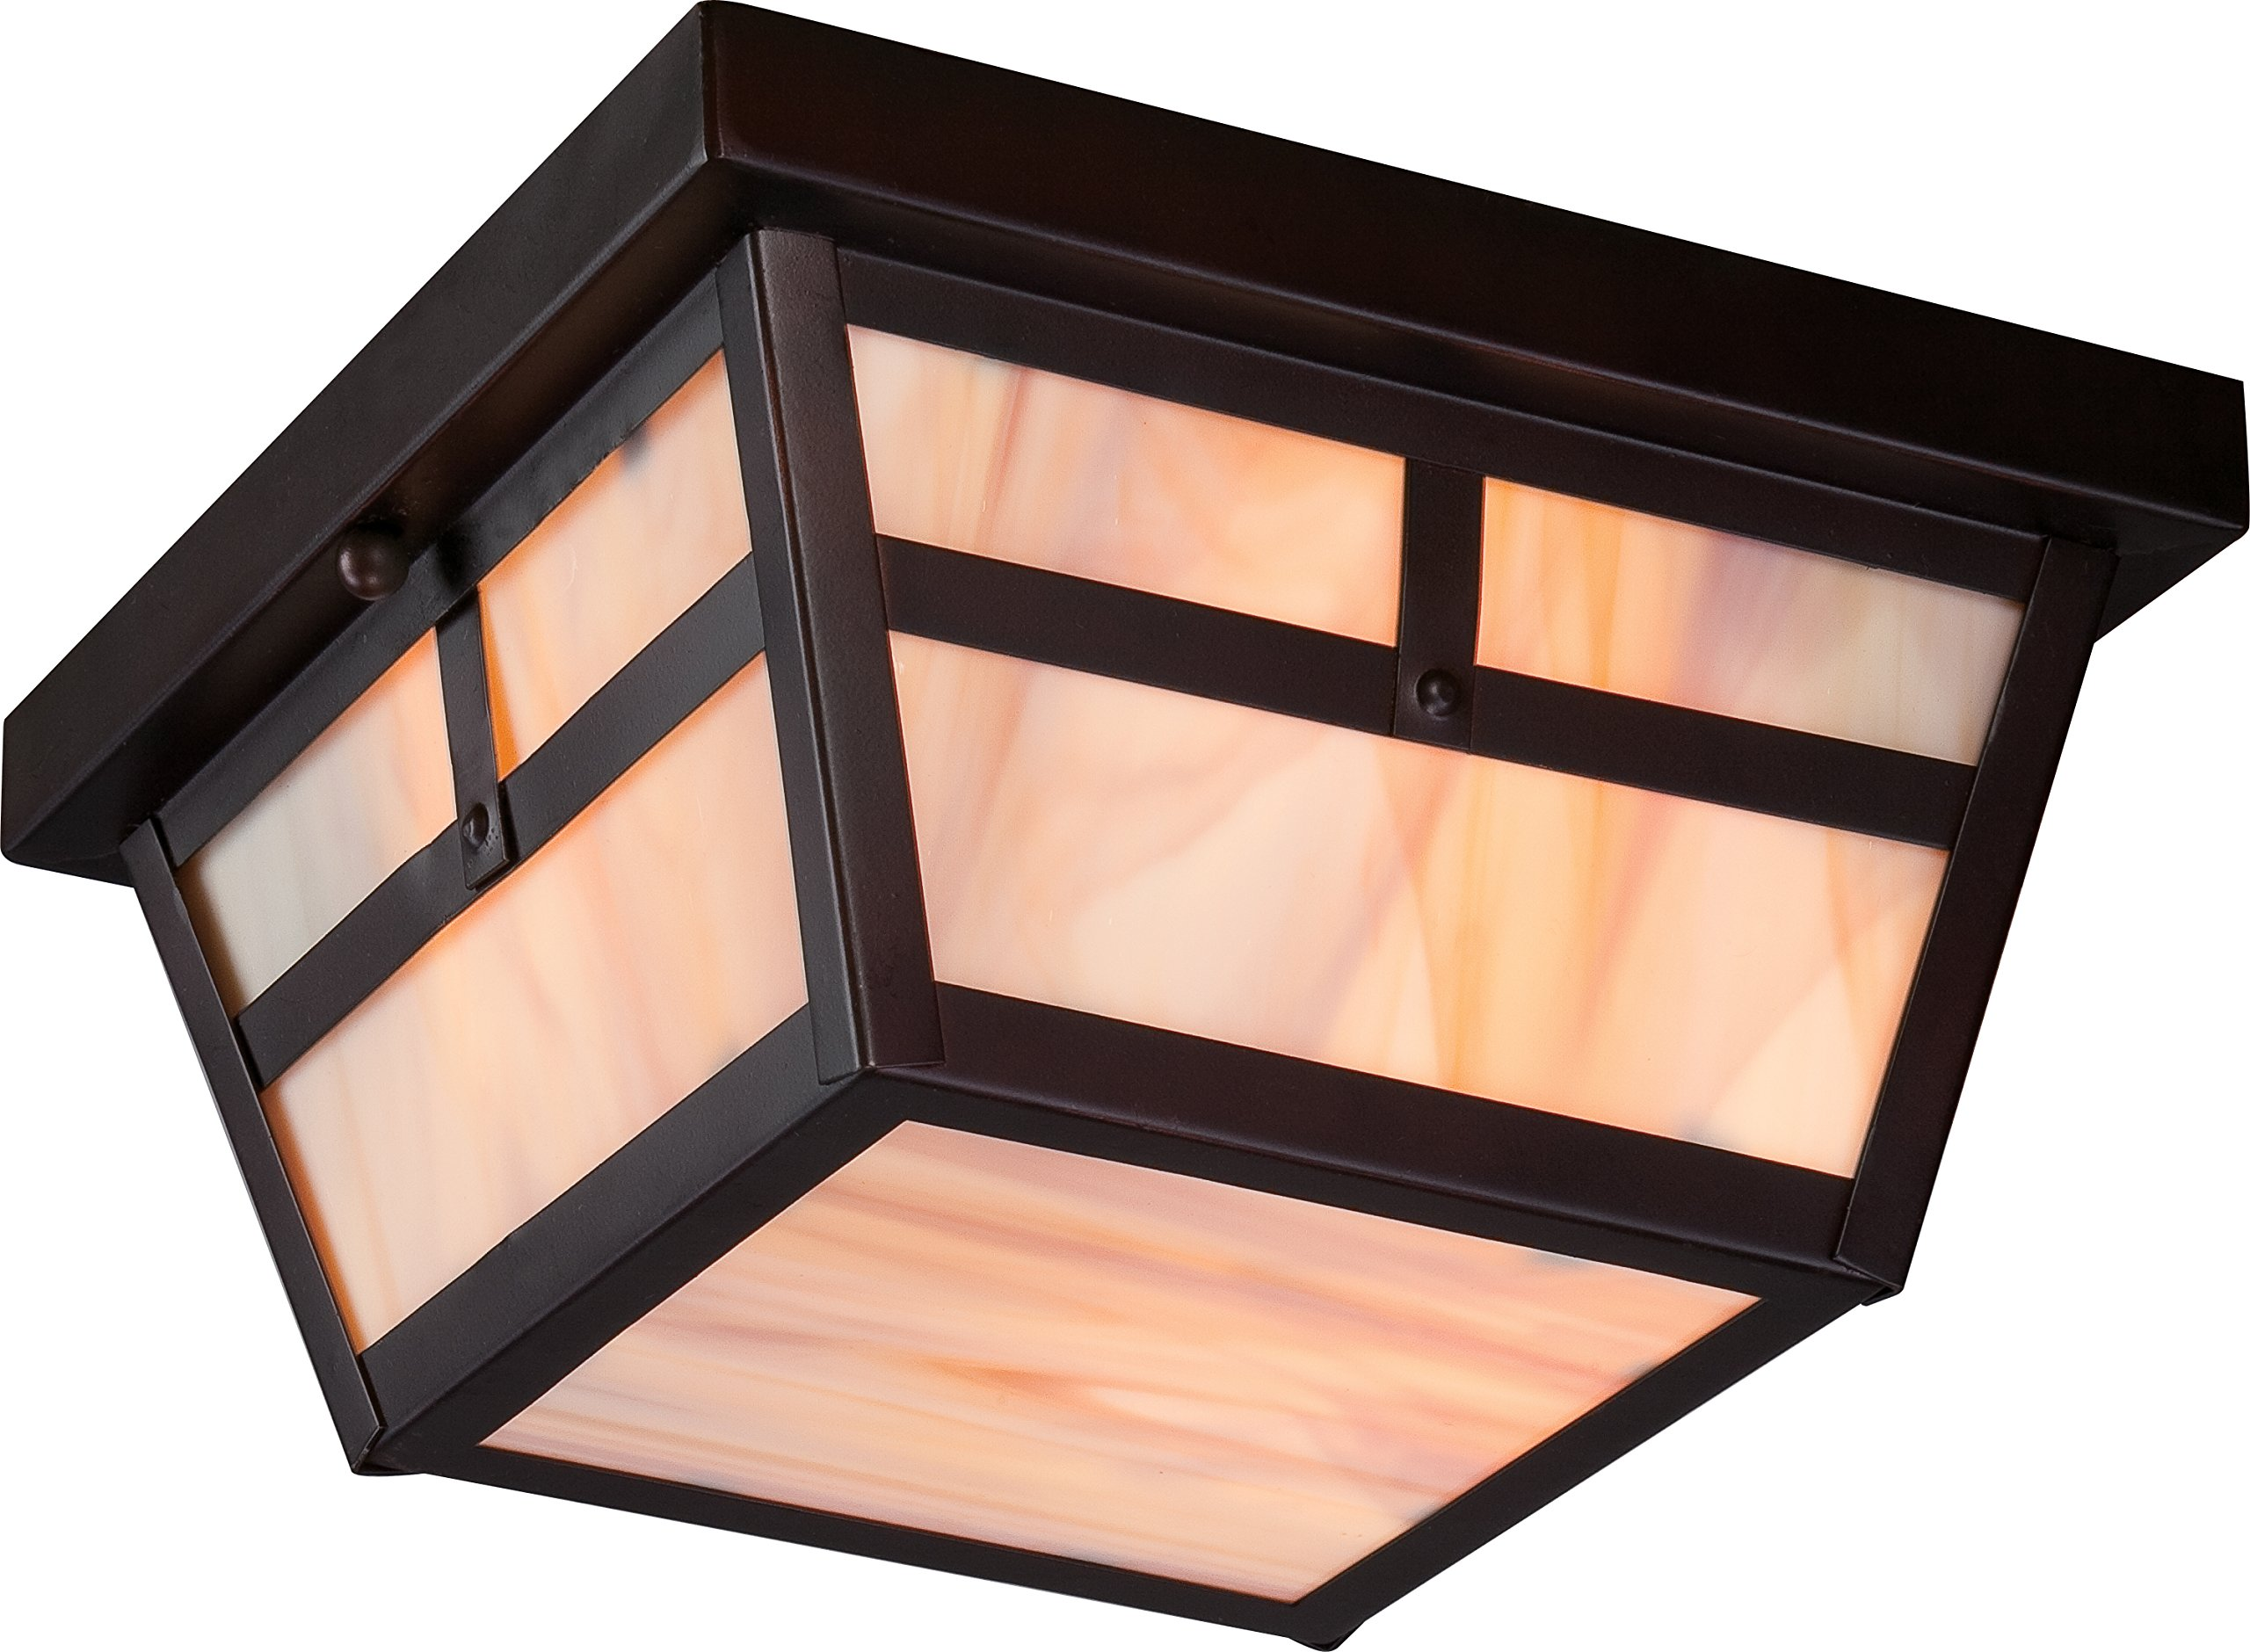 Nuvo Lighting 60/5676 Tanner Flush 2 Light 60-watt A19 Outdoor Close To Ceiling Porch and Patio Lighting with Honey Stained Glass, Claret Bronze